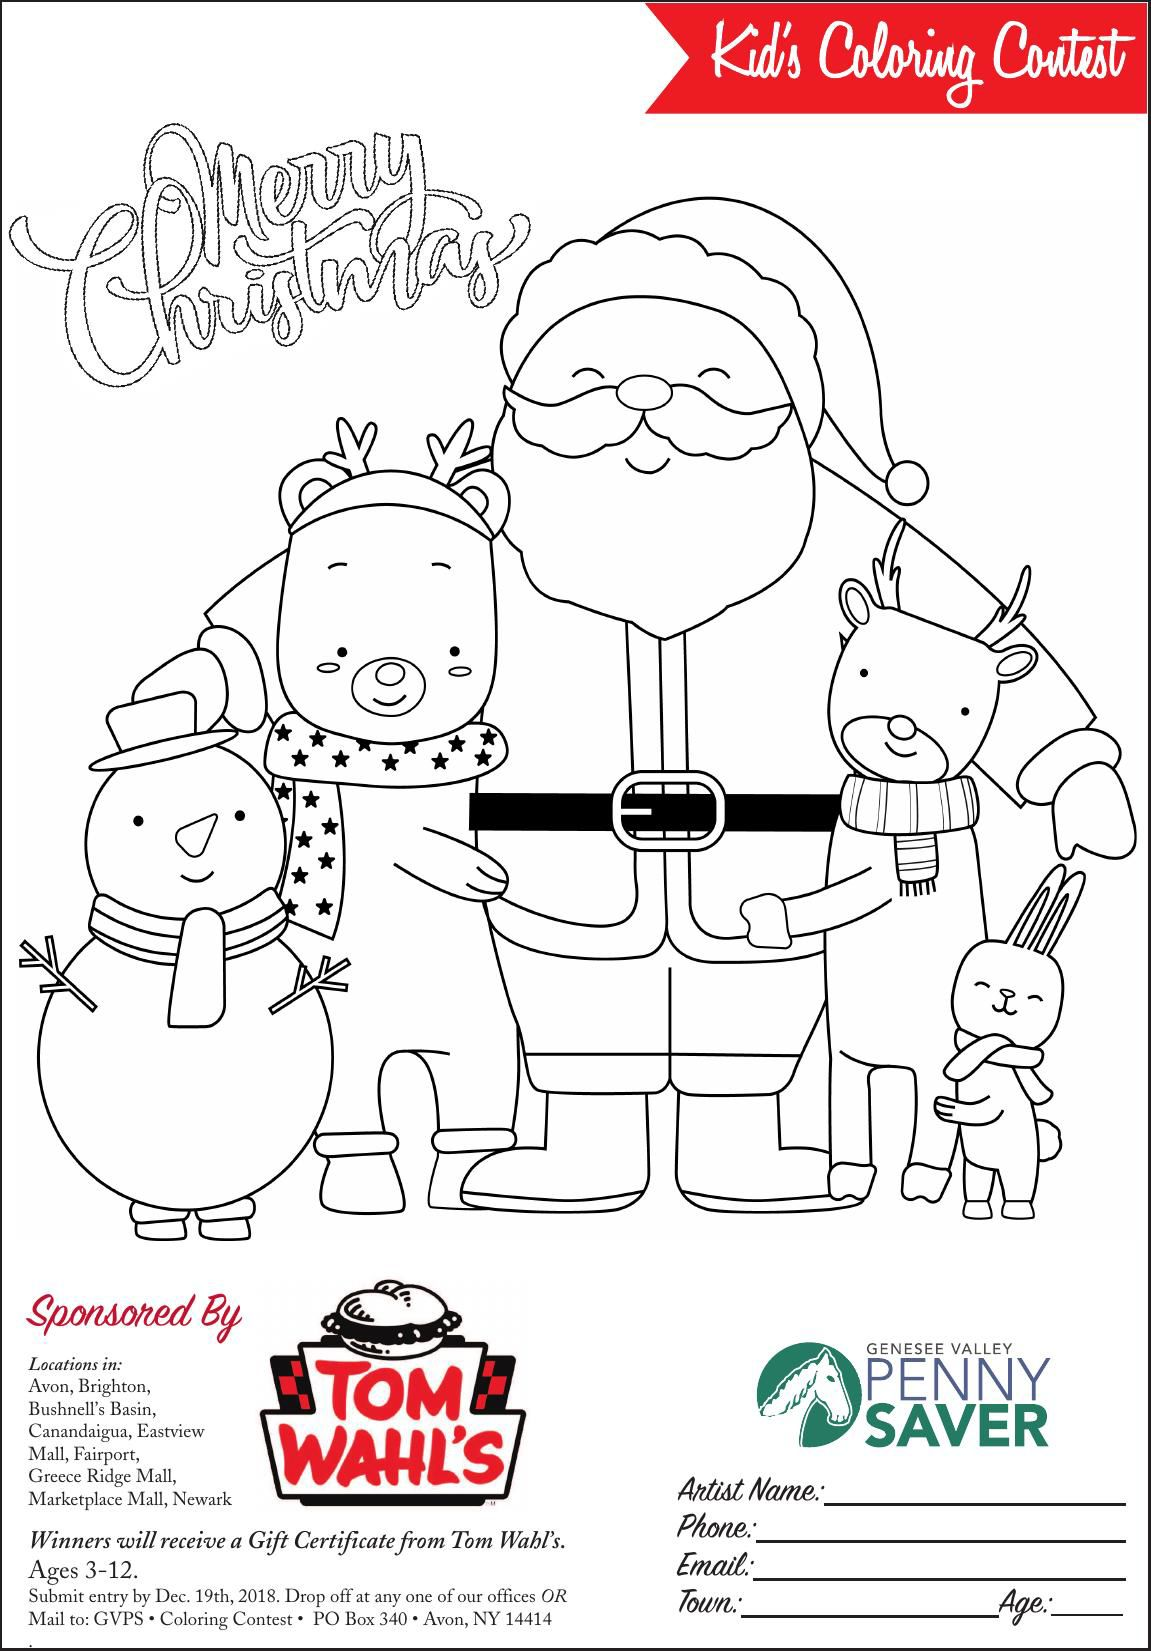 DOWNLOAD A COPY - Kids Coloring Contest 2018 ...